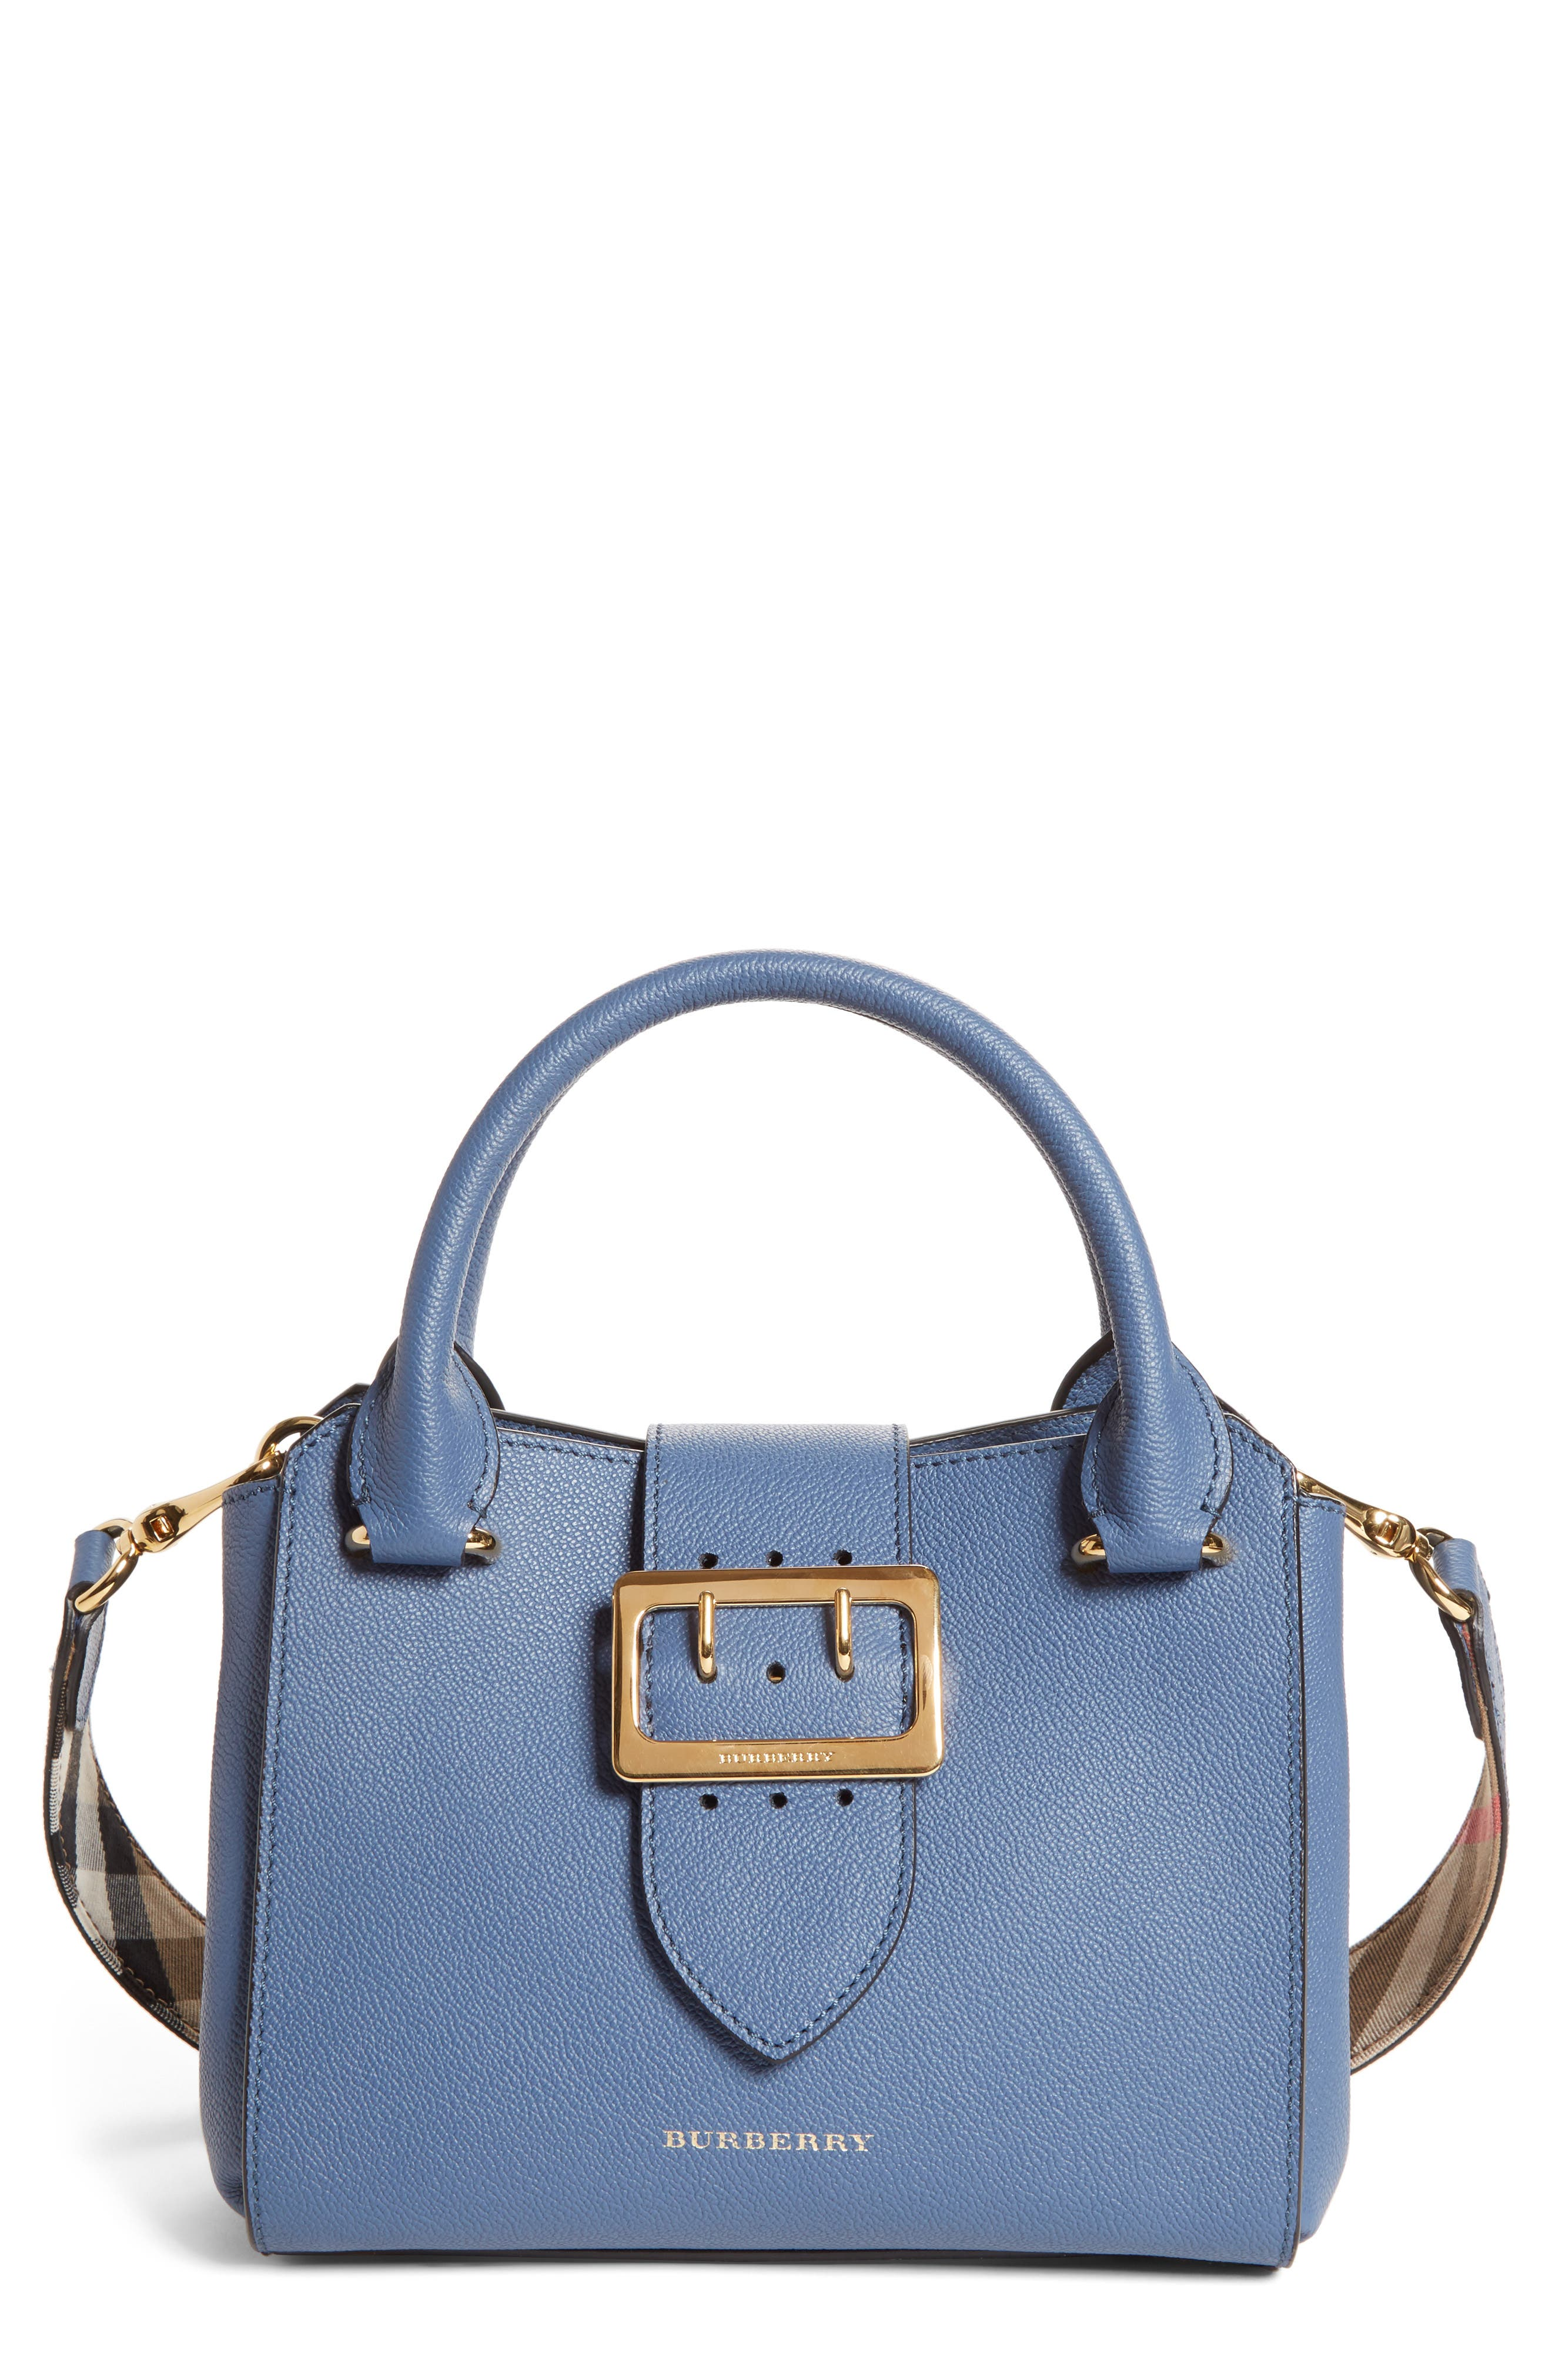 Main Image - Burberry Small Buckle Leather Satchel